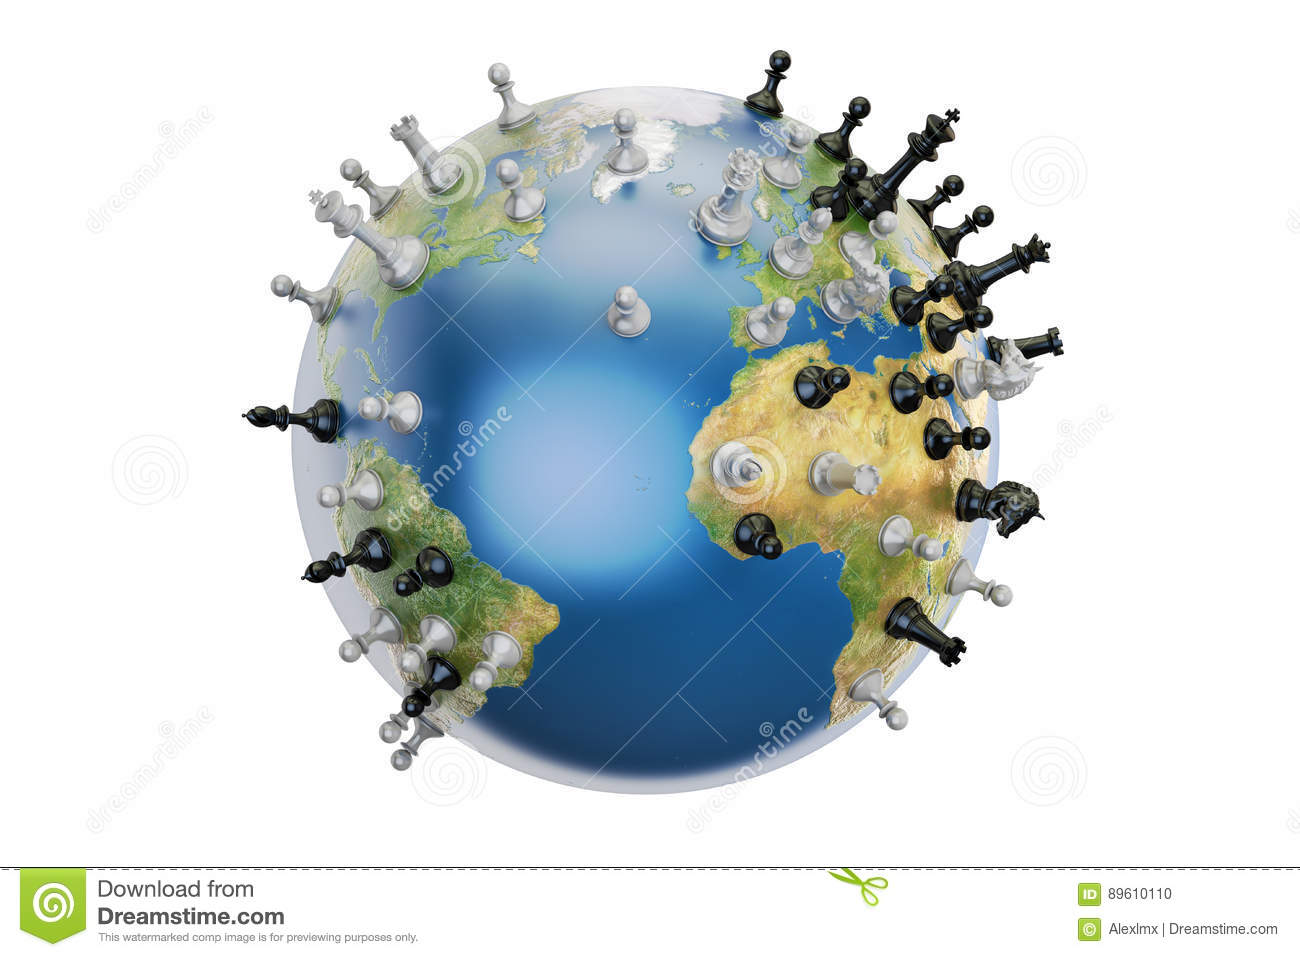 global business strategy Global and transnational business: strategy and management george stonehouse, et al october 2004 about the author zach lazzari has a diverse background with a.